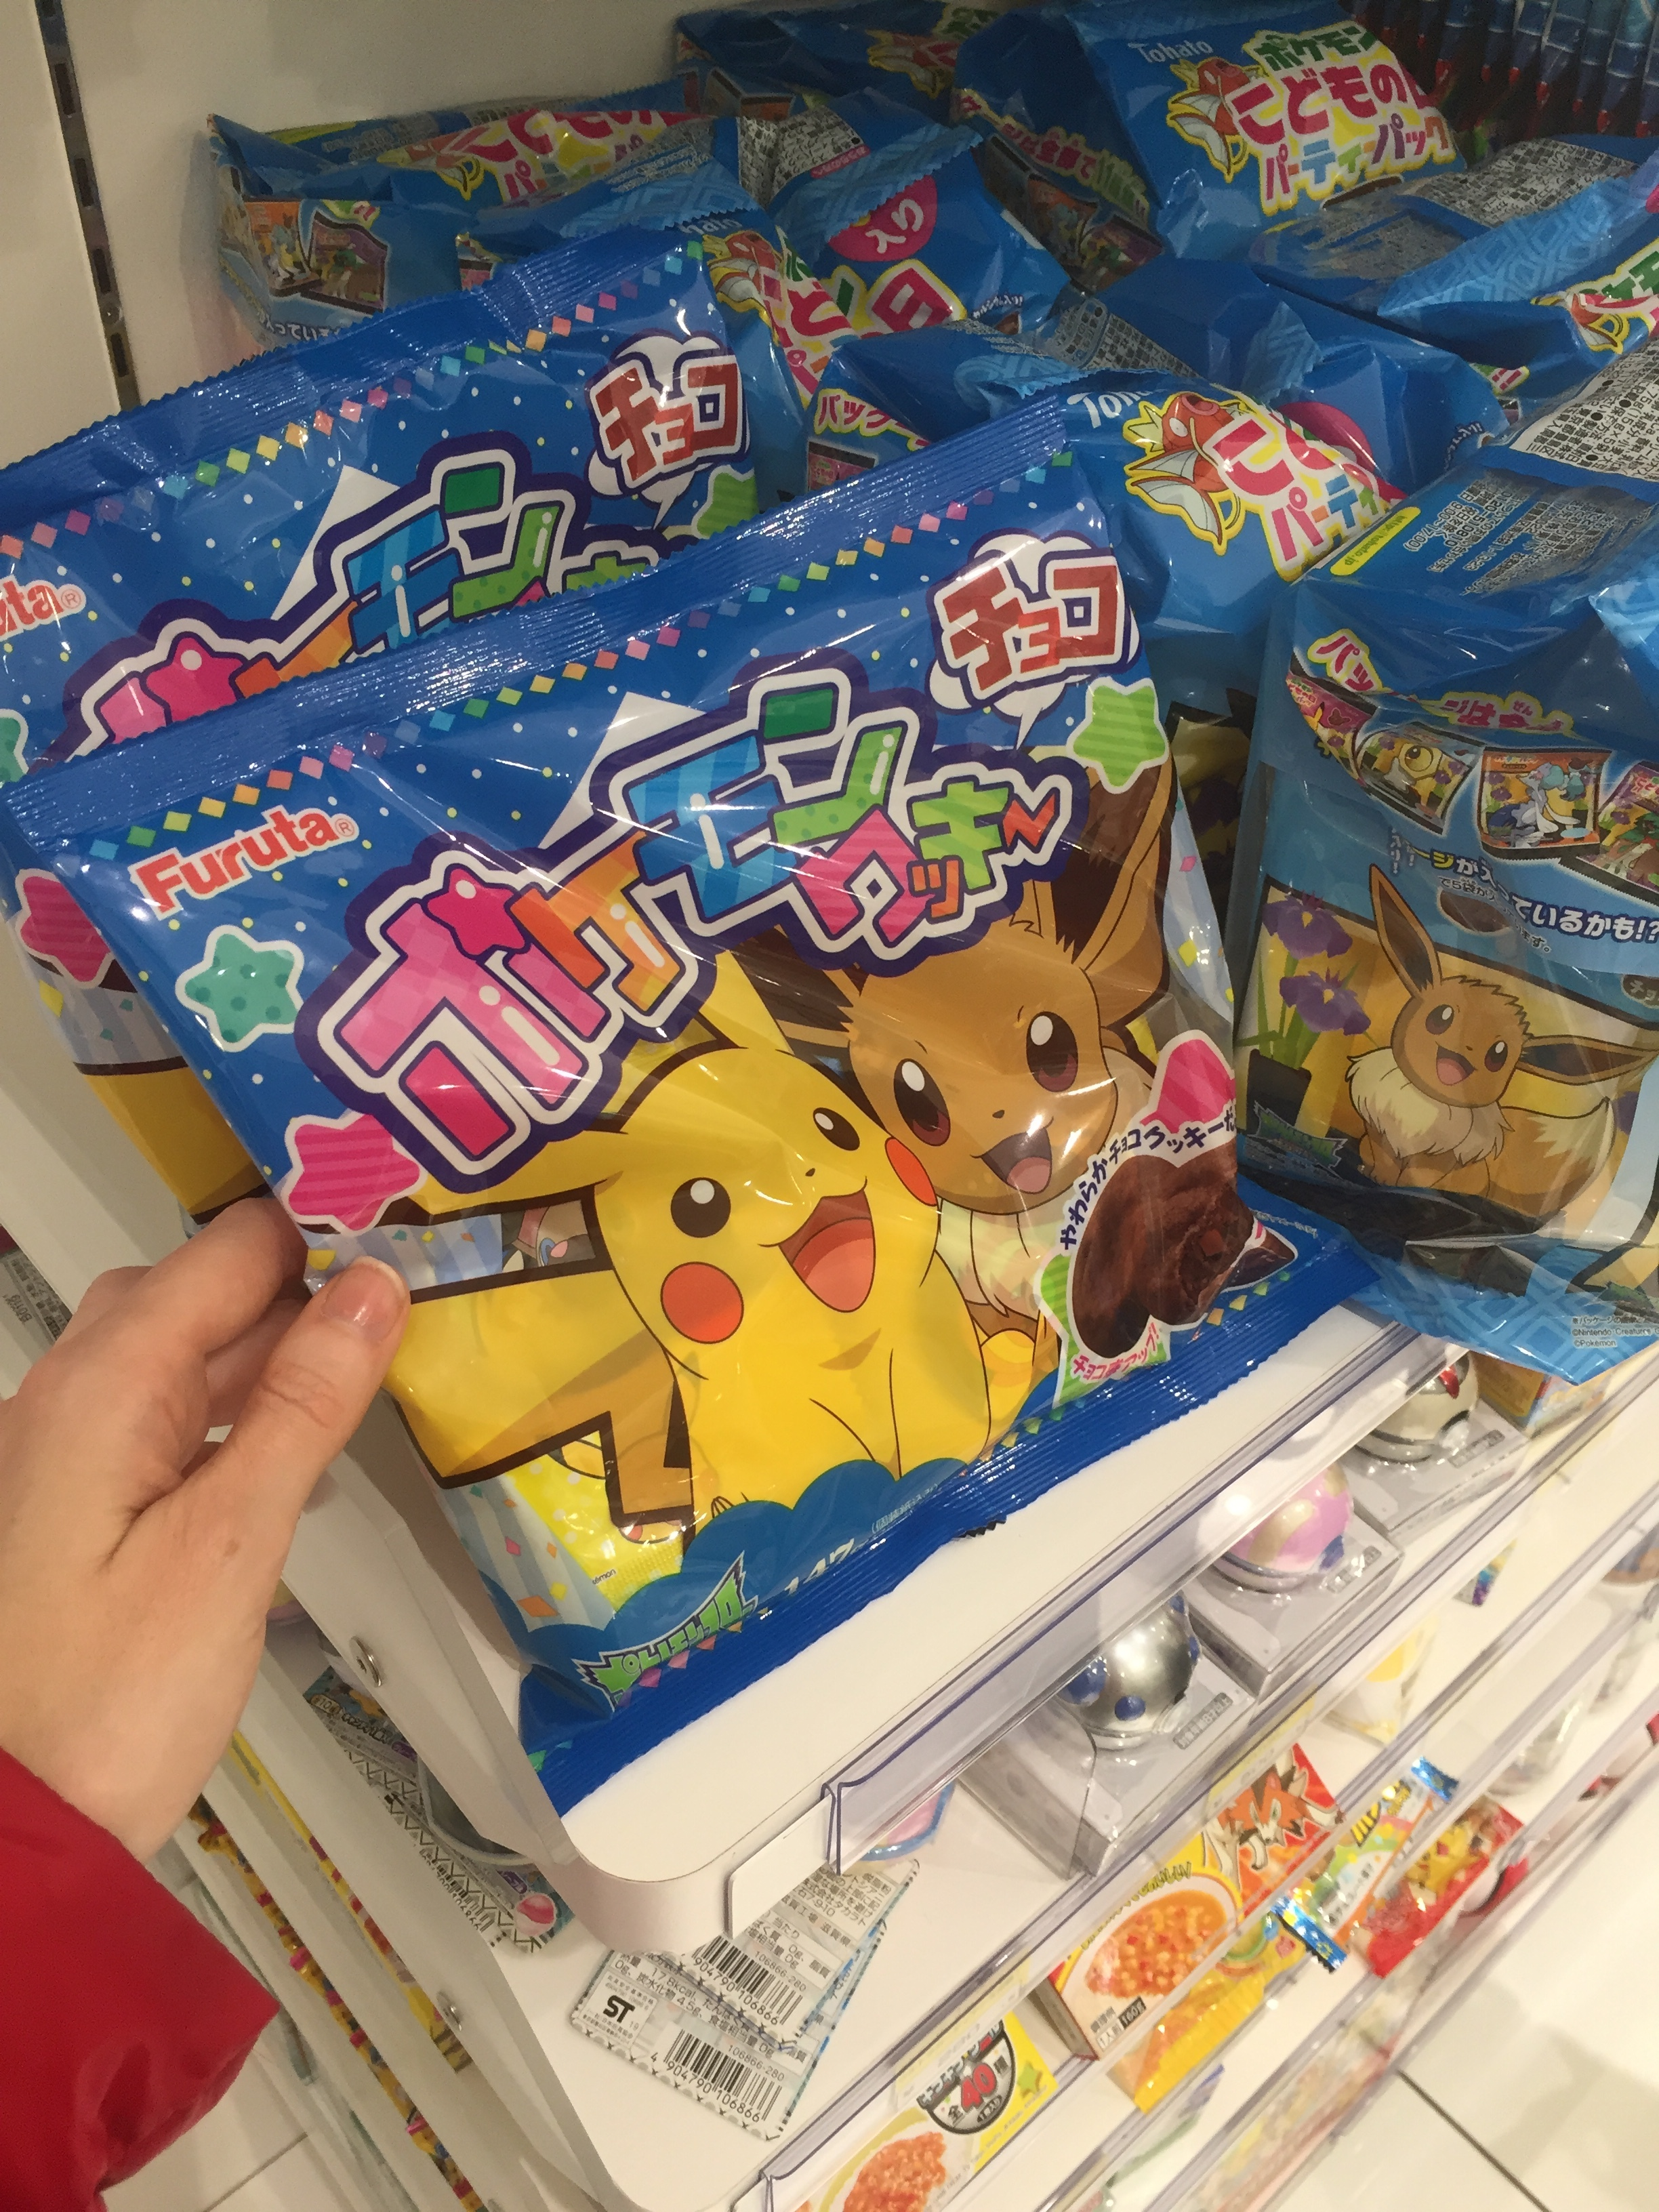 I have no idea what these are but Pikachu and Eevee look pretty happy